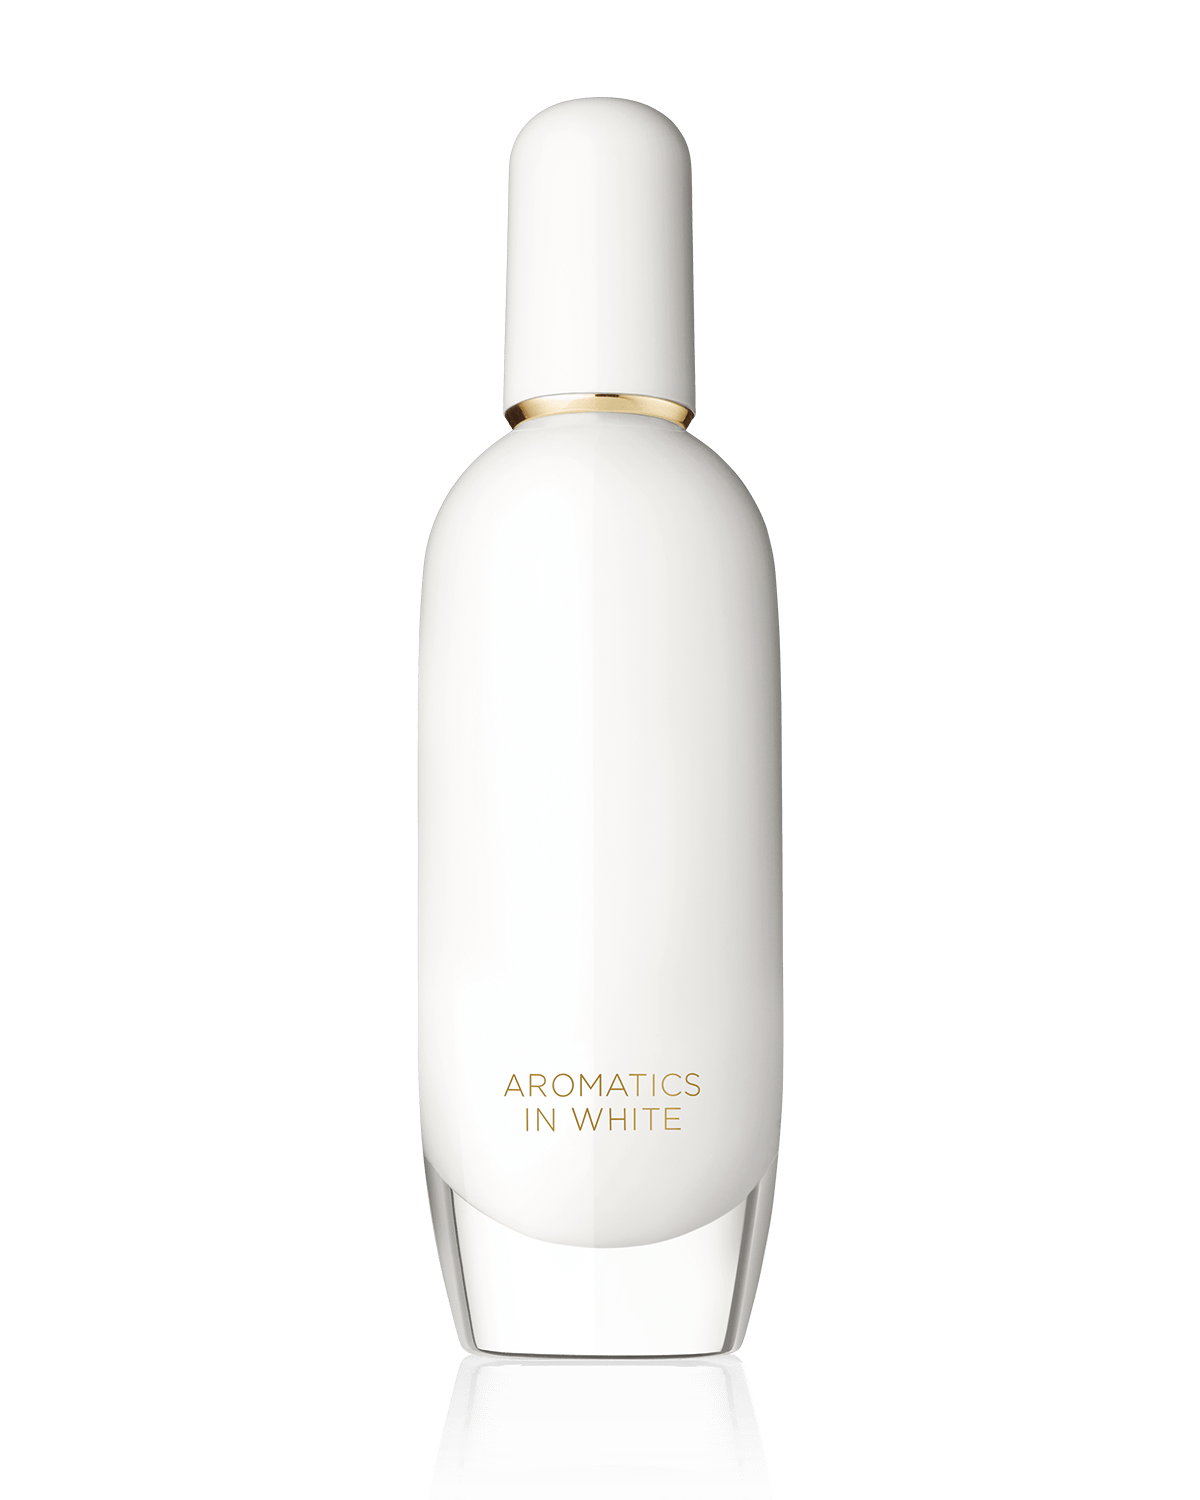 Aromatics in White™ Perfume en Spray